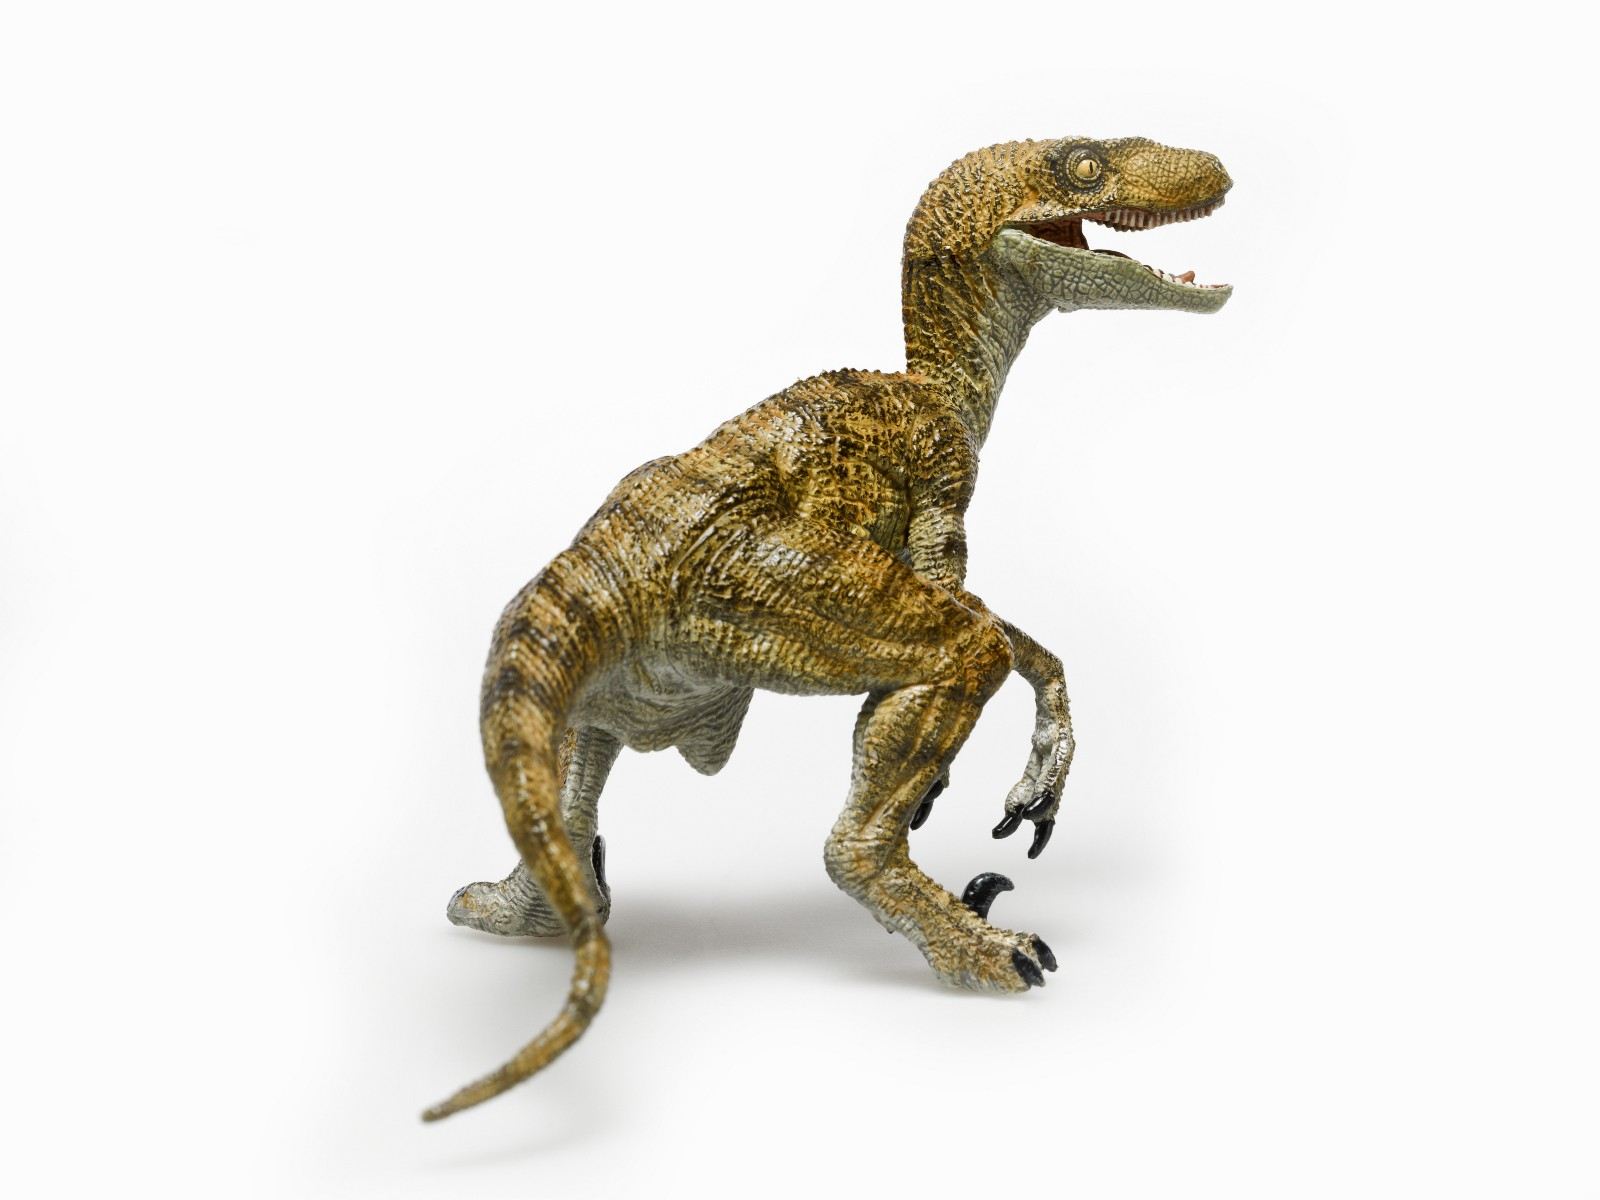 Perhaps The Most Intelligent Of All Dinosaurs This Boss Type Can Be Spotted By His Frequent Display Wit And Intelligence Raptor Bosses Are Peoples